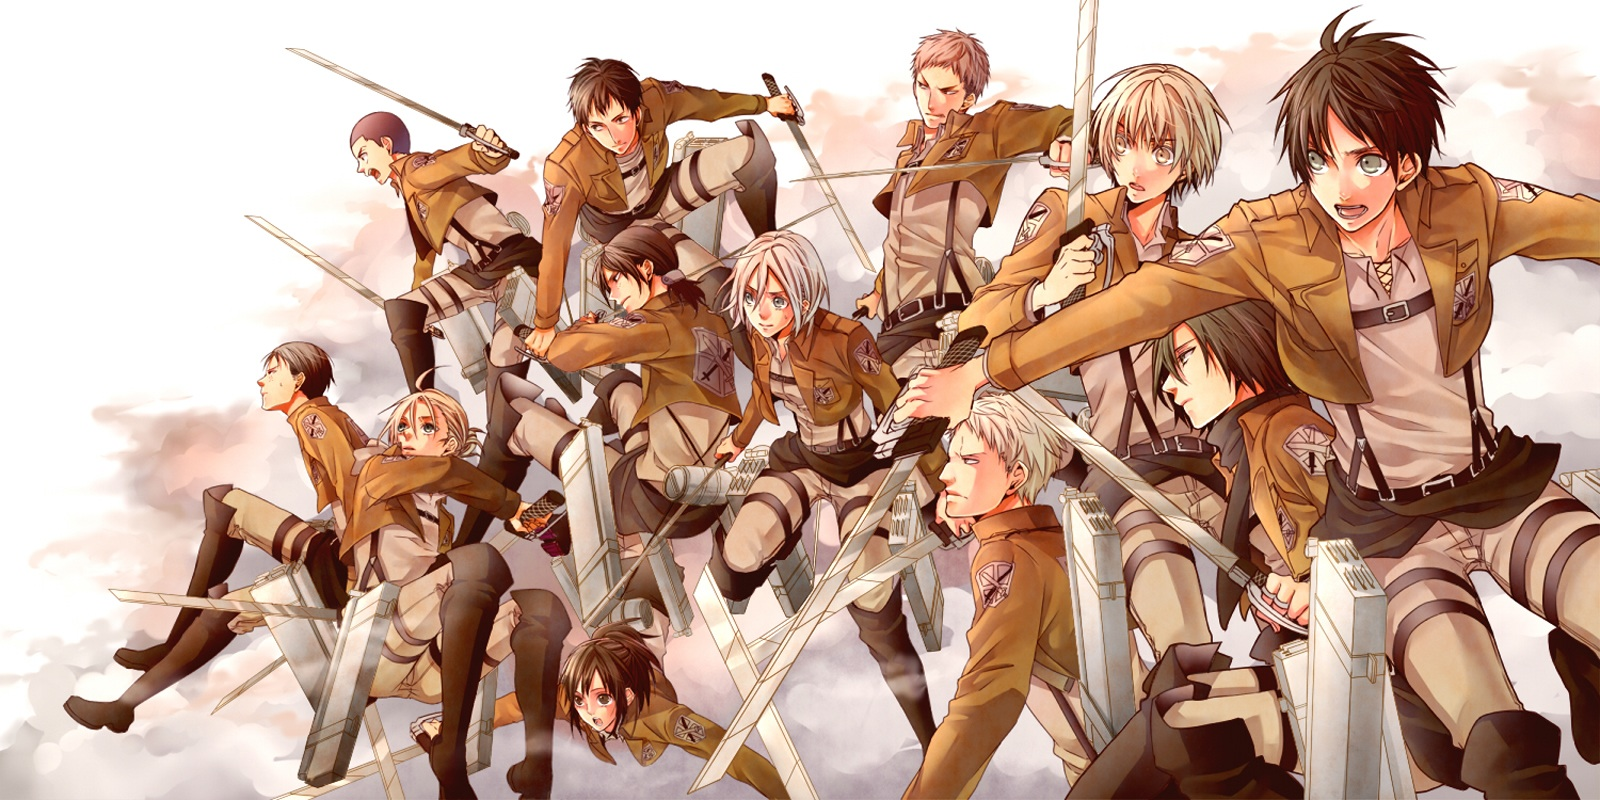 104-shingeki-no-kyojin-attack-on-titan-35593469-1600-800